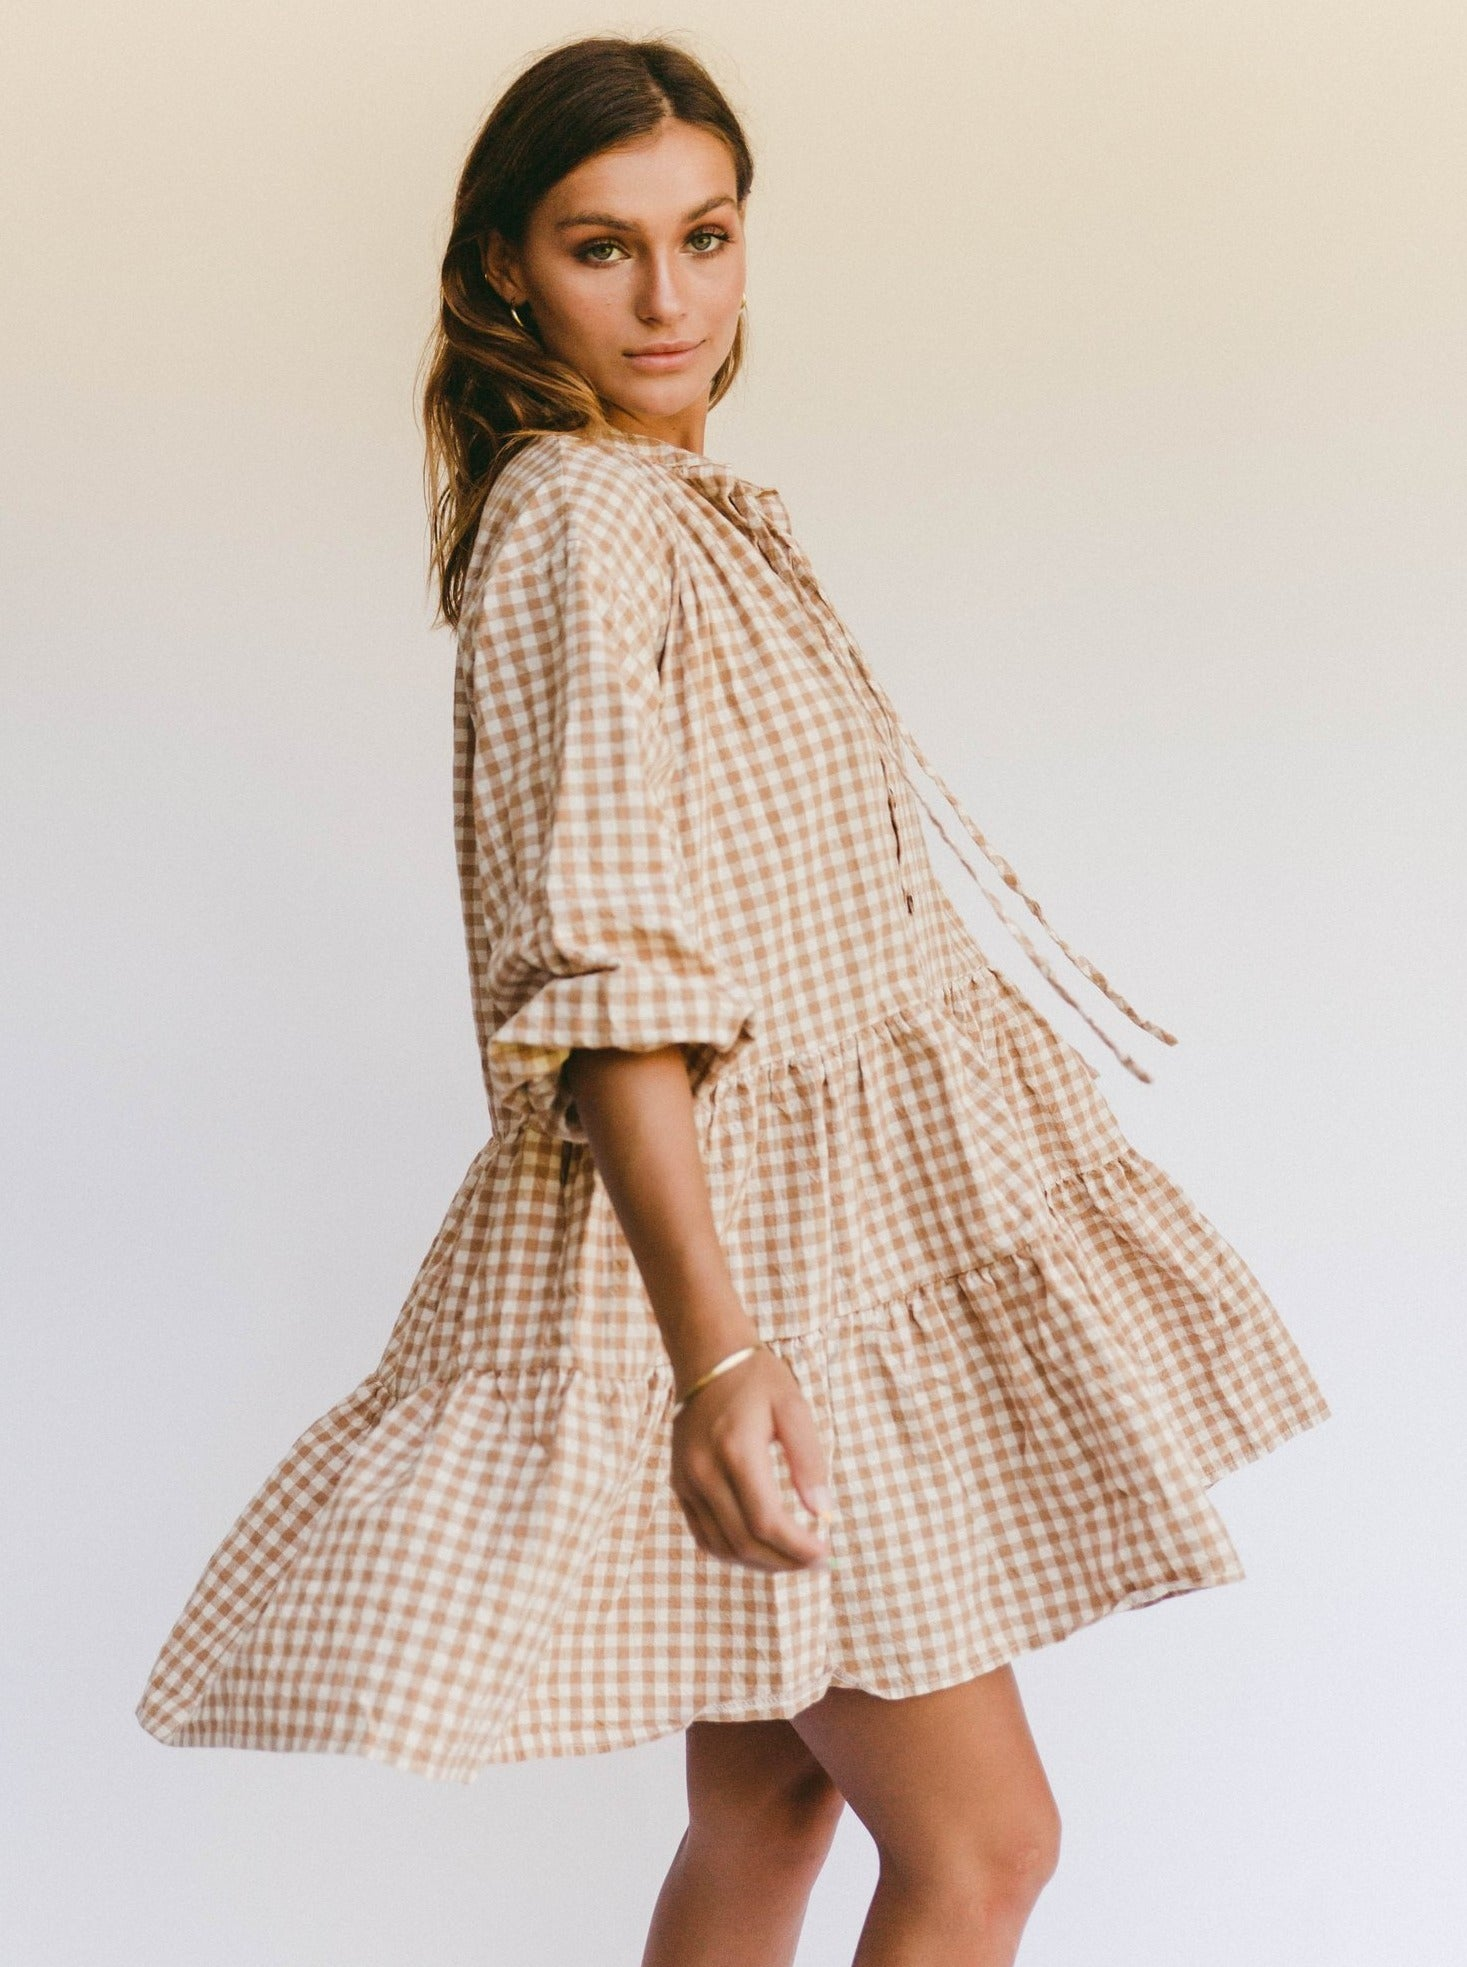 Lullaby Club Avalon Smock Dress in Caramel Gingham